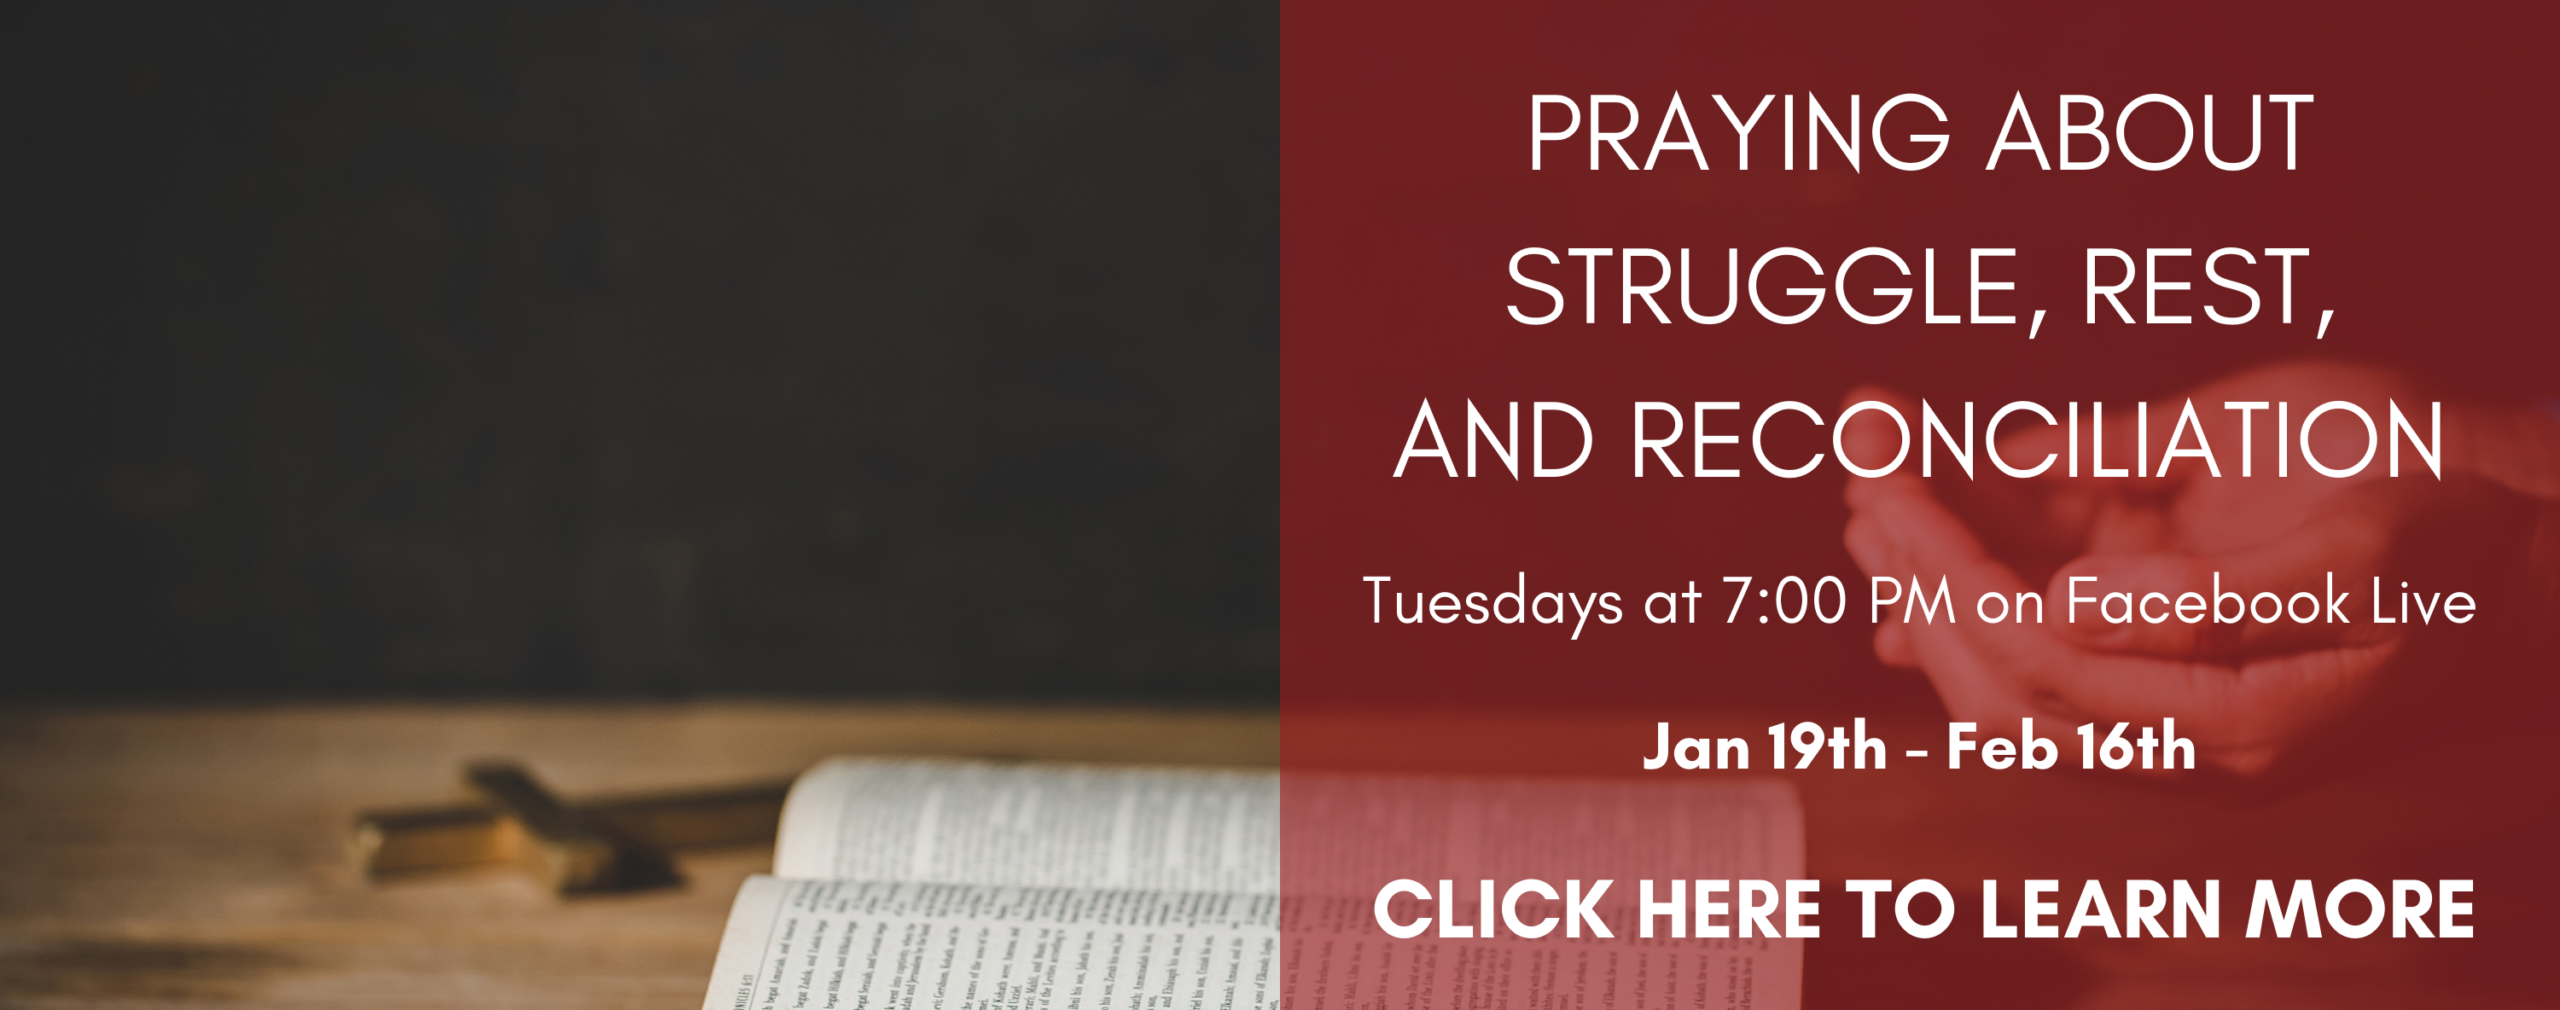 Praying about struggle, rest, and reconciliation-- click here to learn more